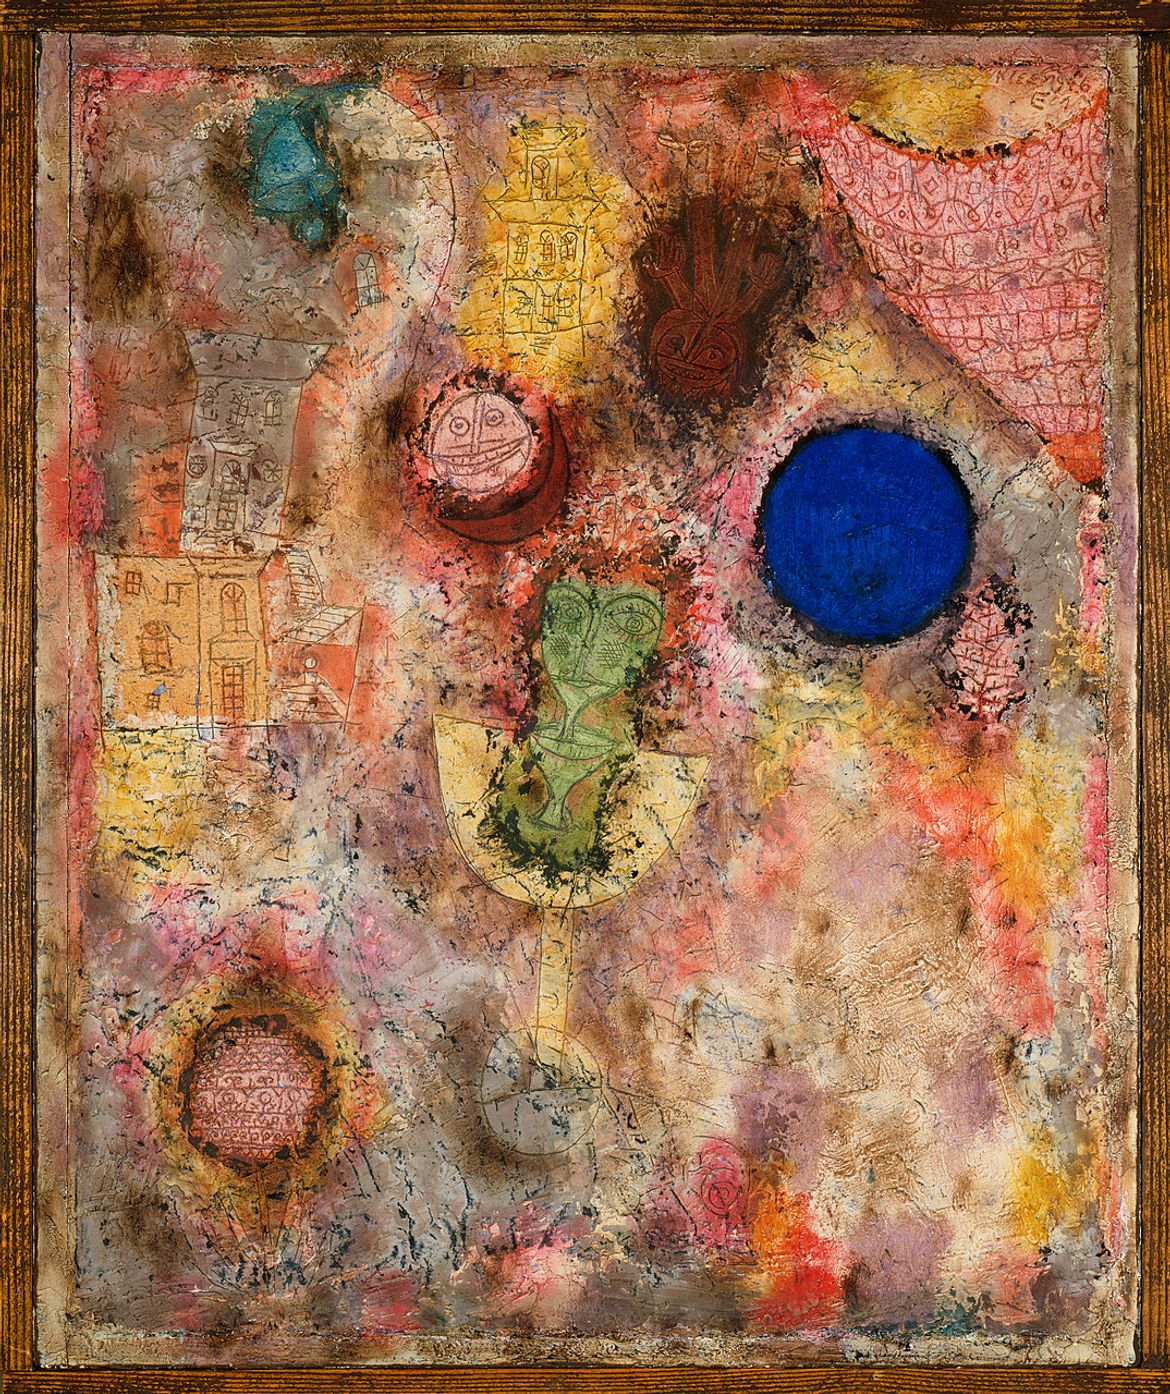 Paul Klee, Magic Garden, March 1926. Oil on plaster-filled wire mesh in artist's frame, plaster: 20 1/2 x 16 5/8 inches (52.1 x 42.2 cm); frame: 20 7/8 x 17 3/4 inches (53 x 45.1 cm)